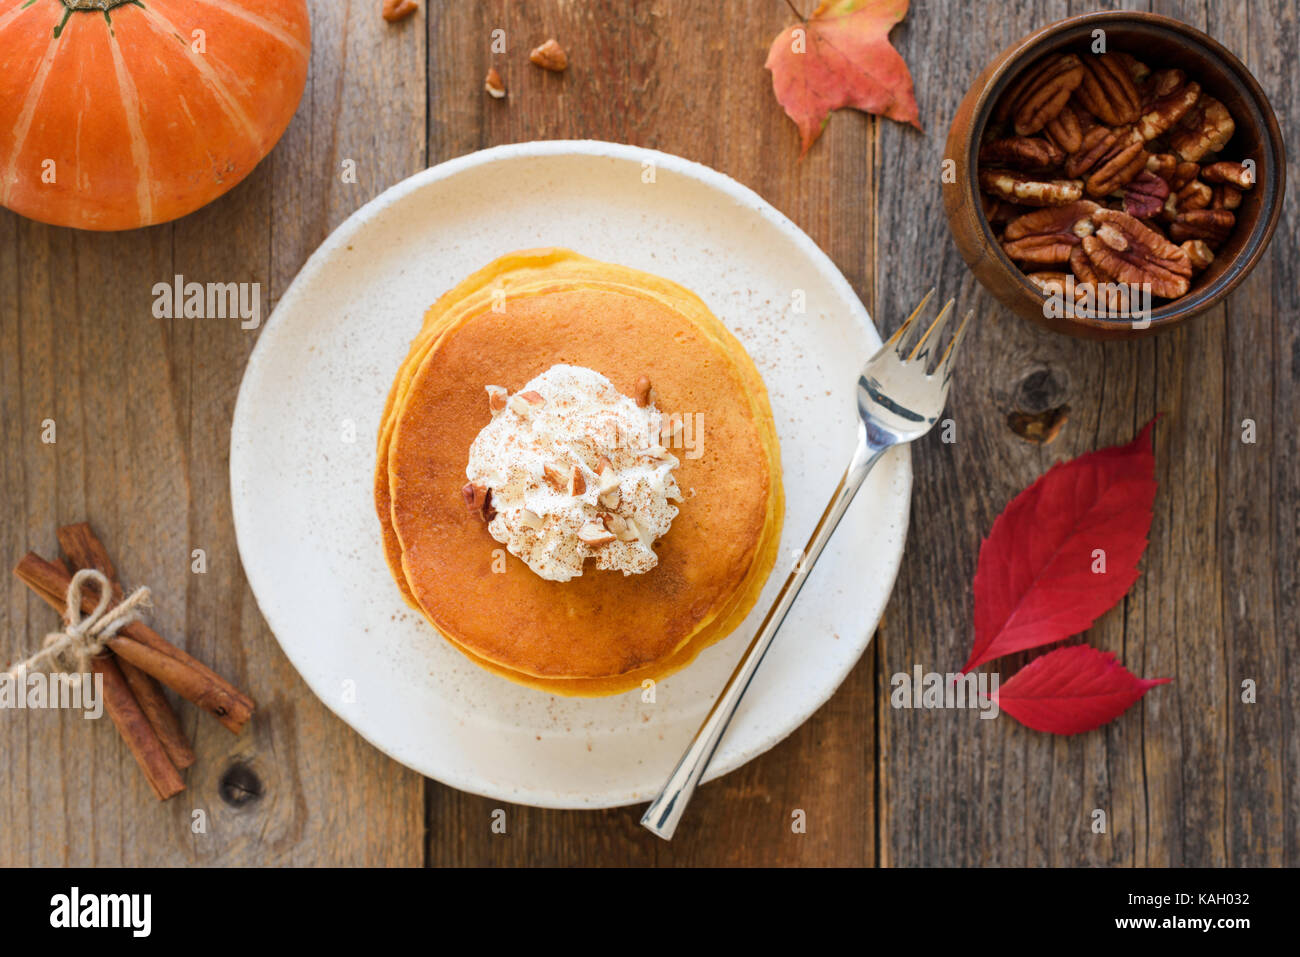 Pumpkin pancakes with whipped cream and cinnamon on wooden table. Top view, horizontal - Stock Image